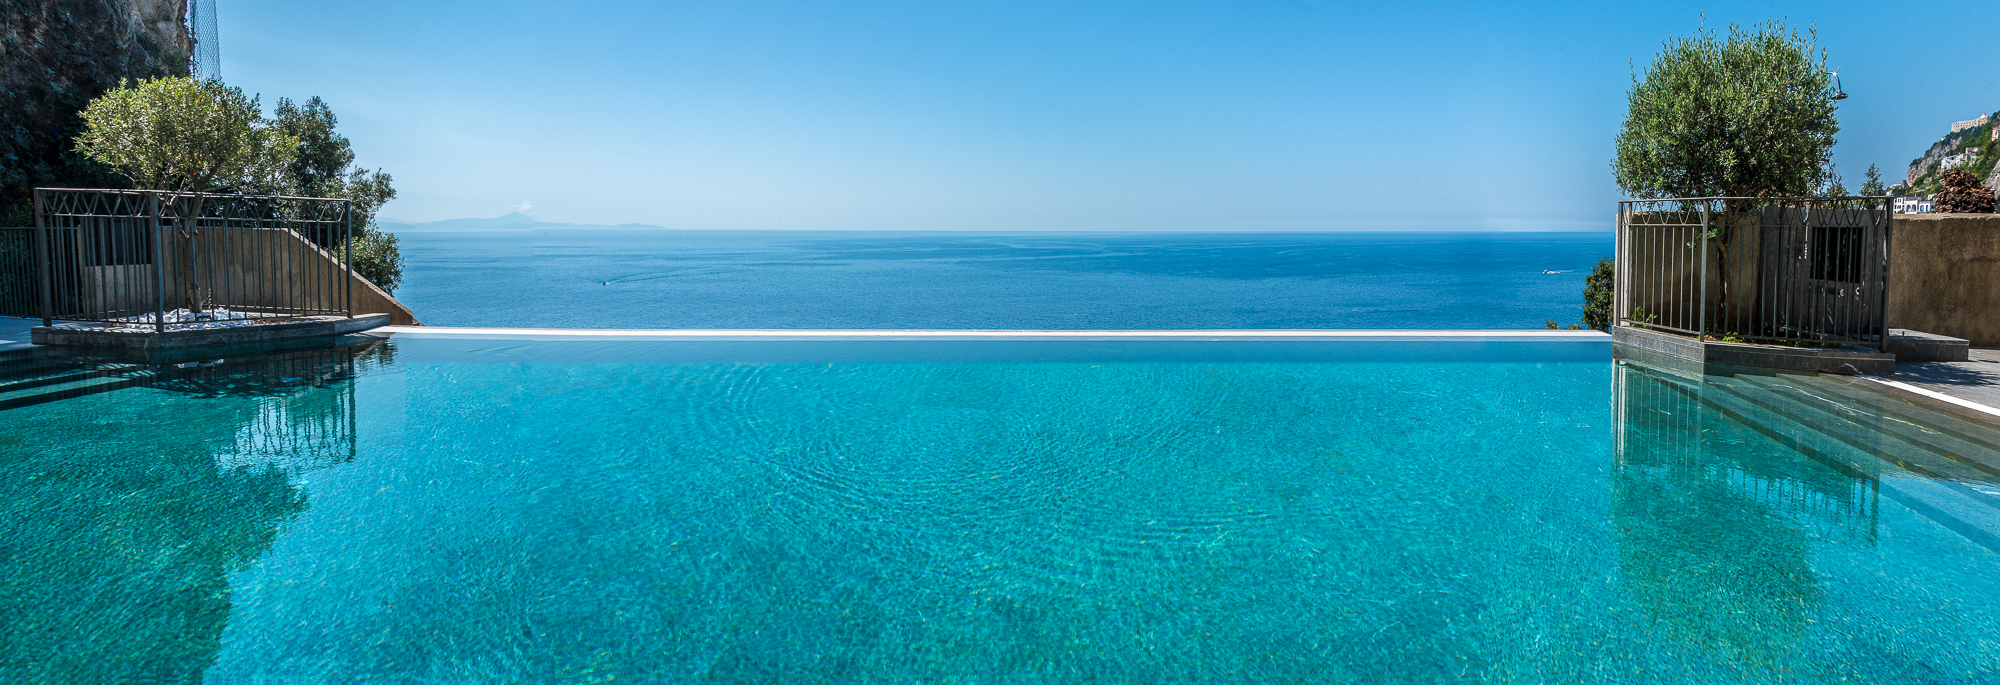 The infinity pool, with an infinite view of the Med